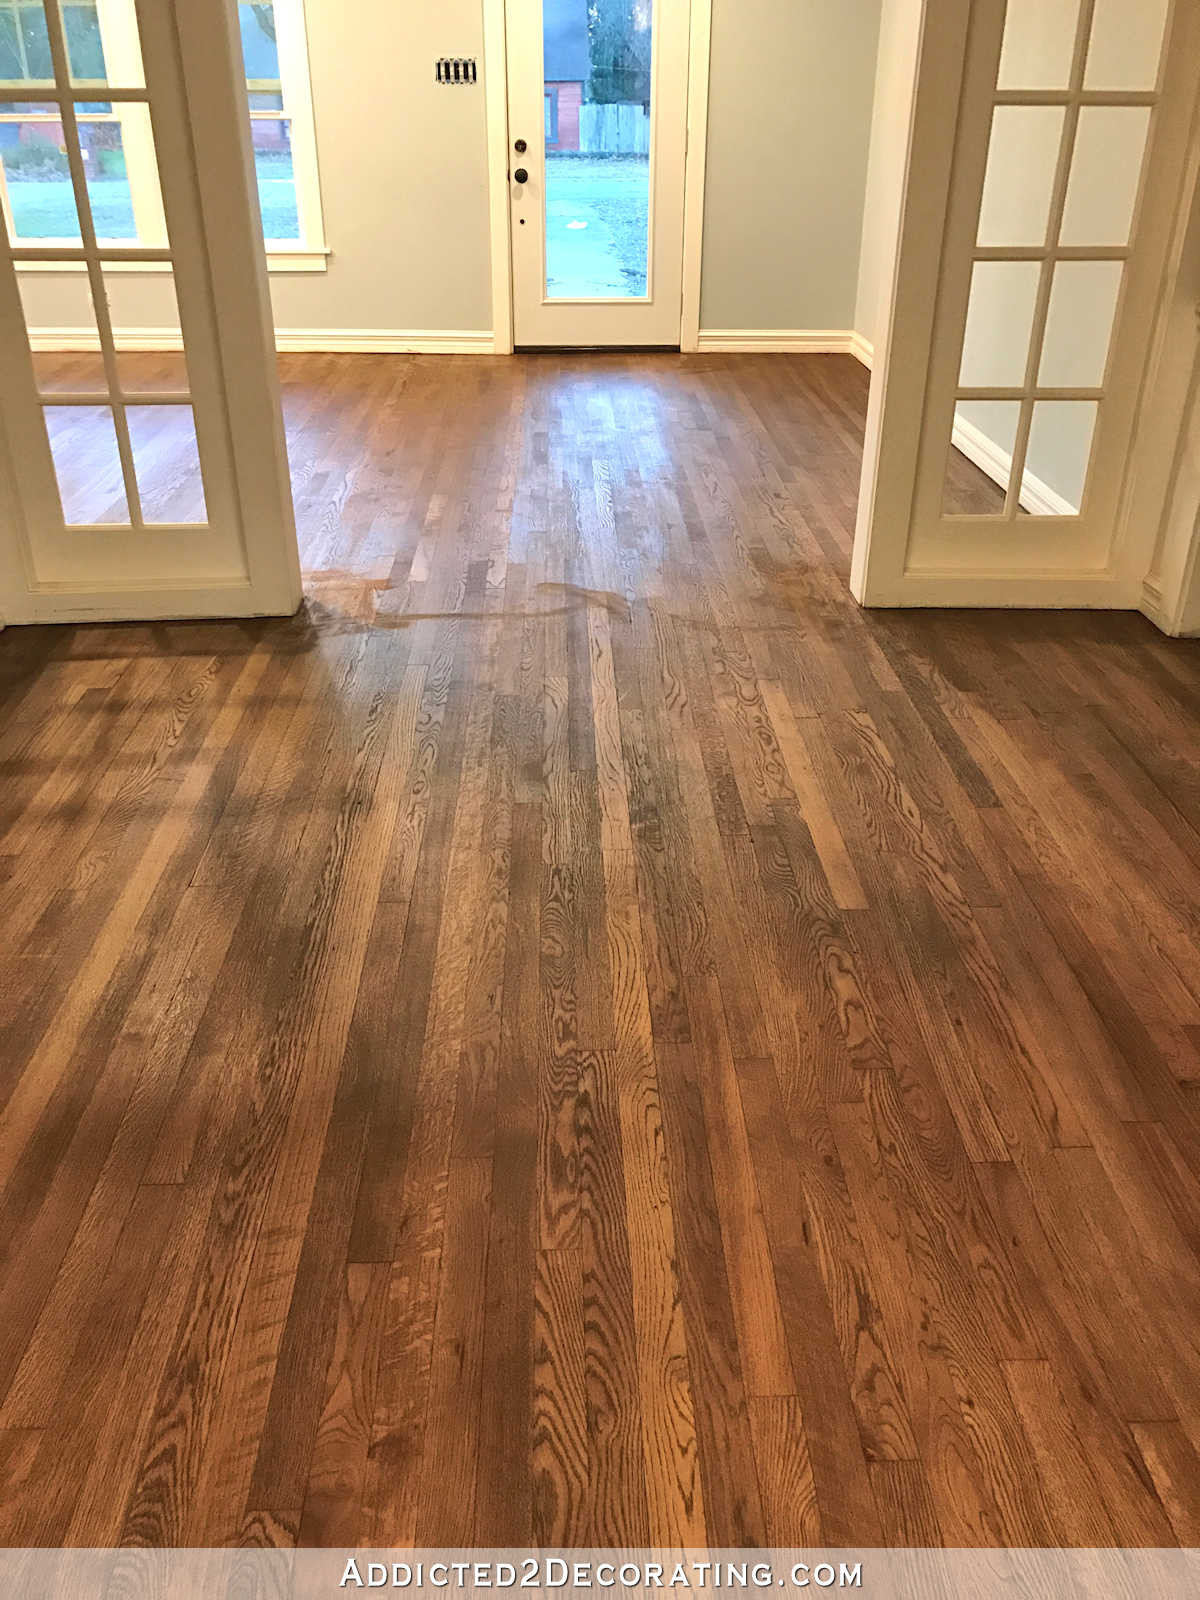 sanding hardwood floors yourself of adventures in staining my red oak hardwood floors products process throughout staining red oak hardwood floors 9 stain on entryway and music room floors